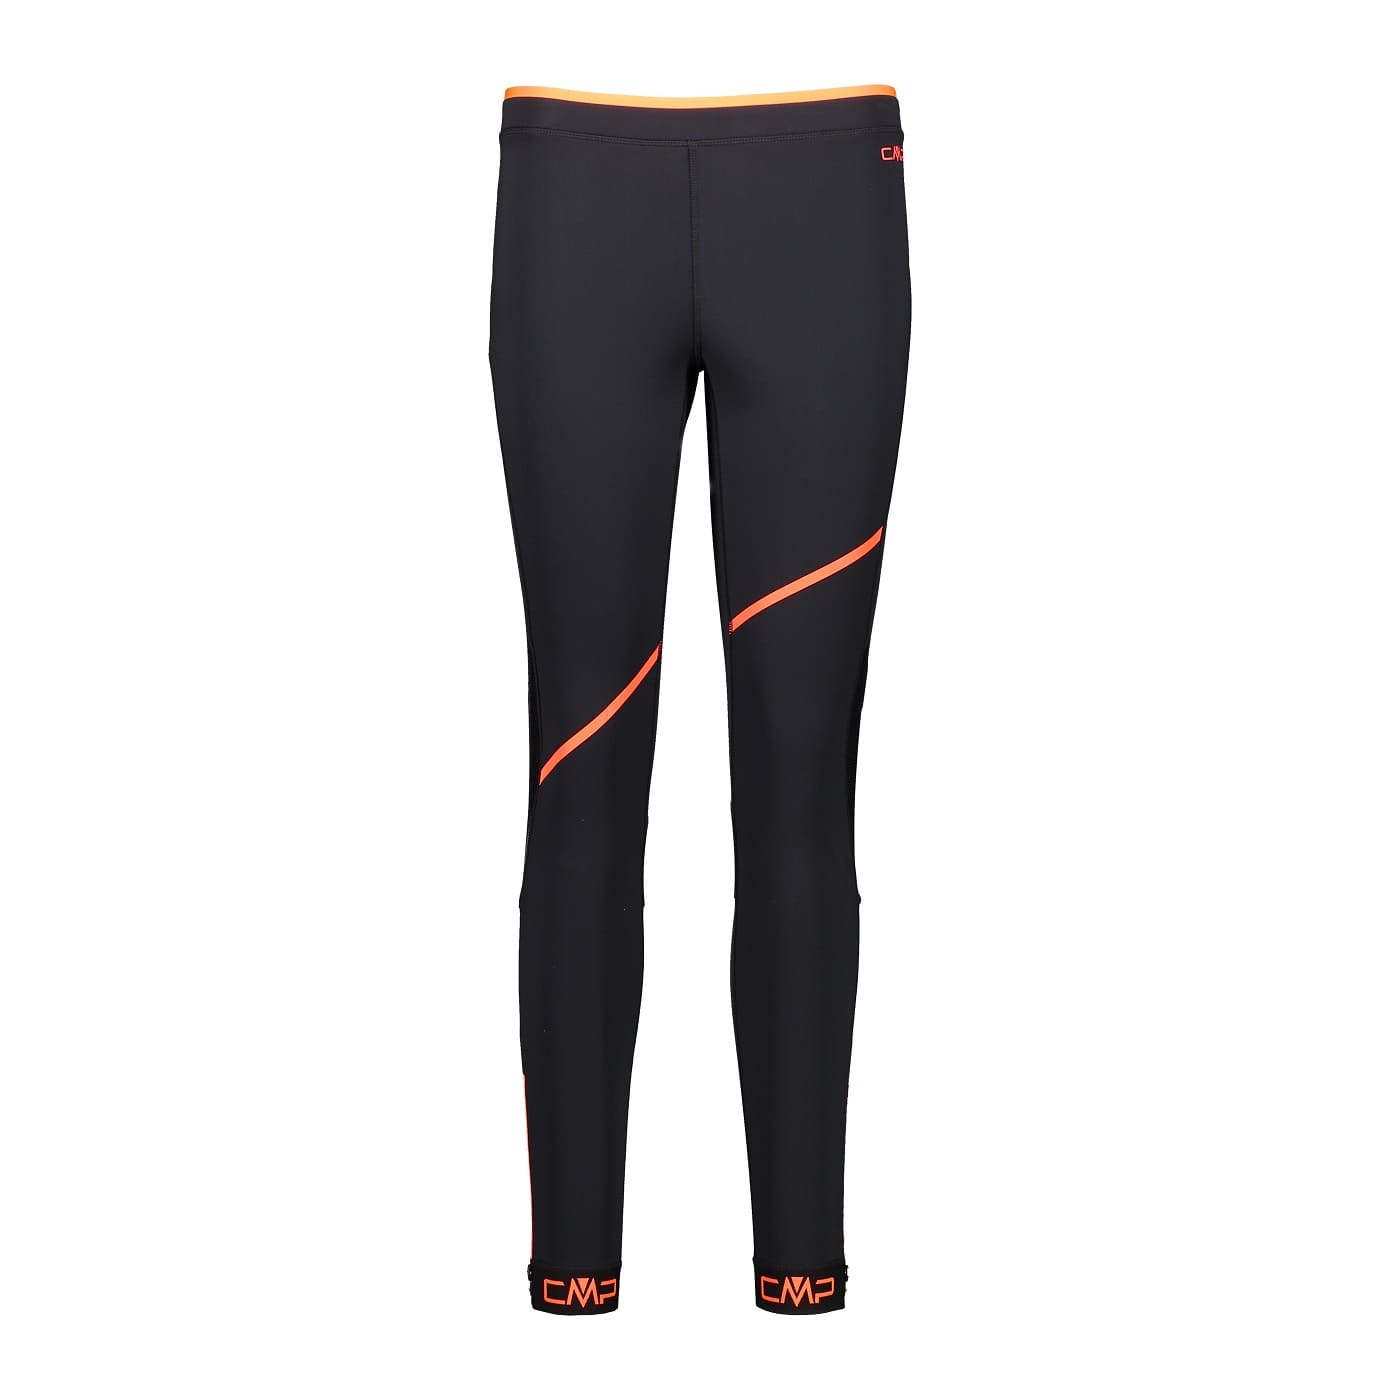 CMP WOMAN LONG TIGHTS NERO-RED FLUO - 44/38